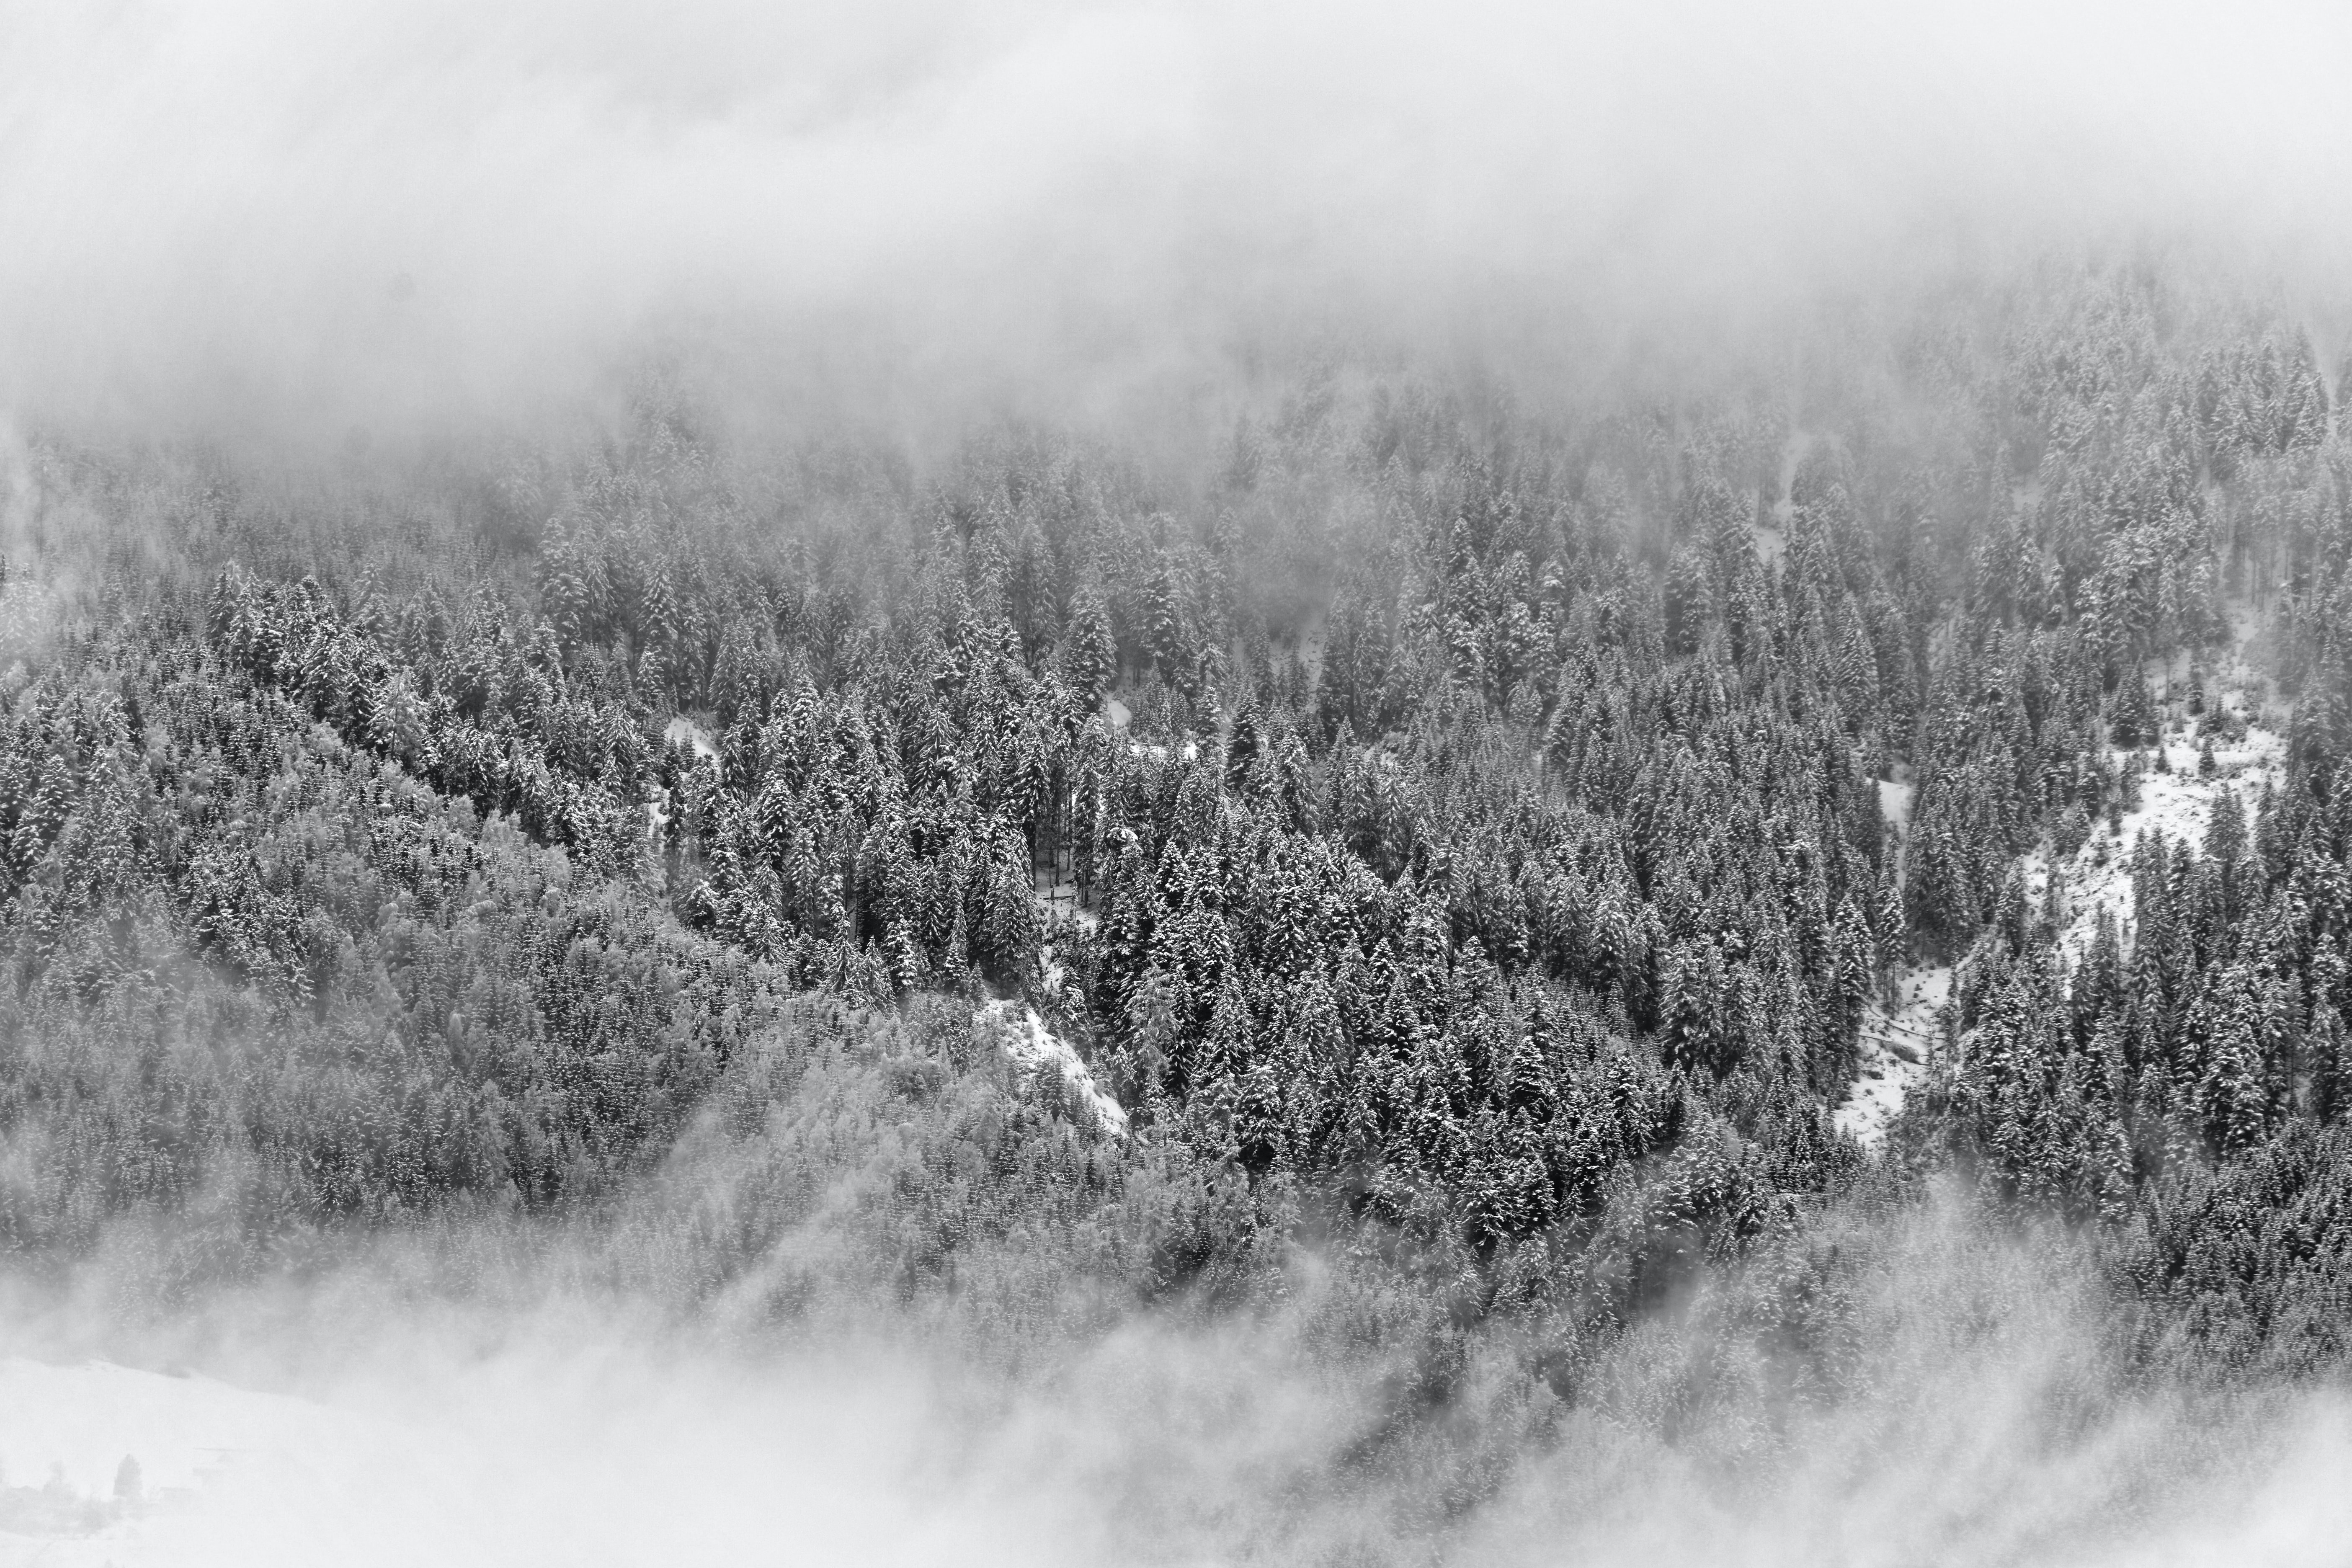 gray scale photo of trees in bird's eye view